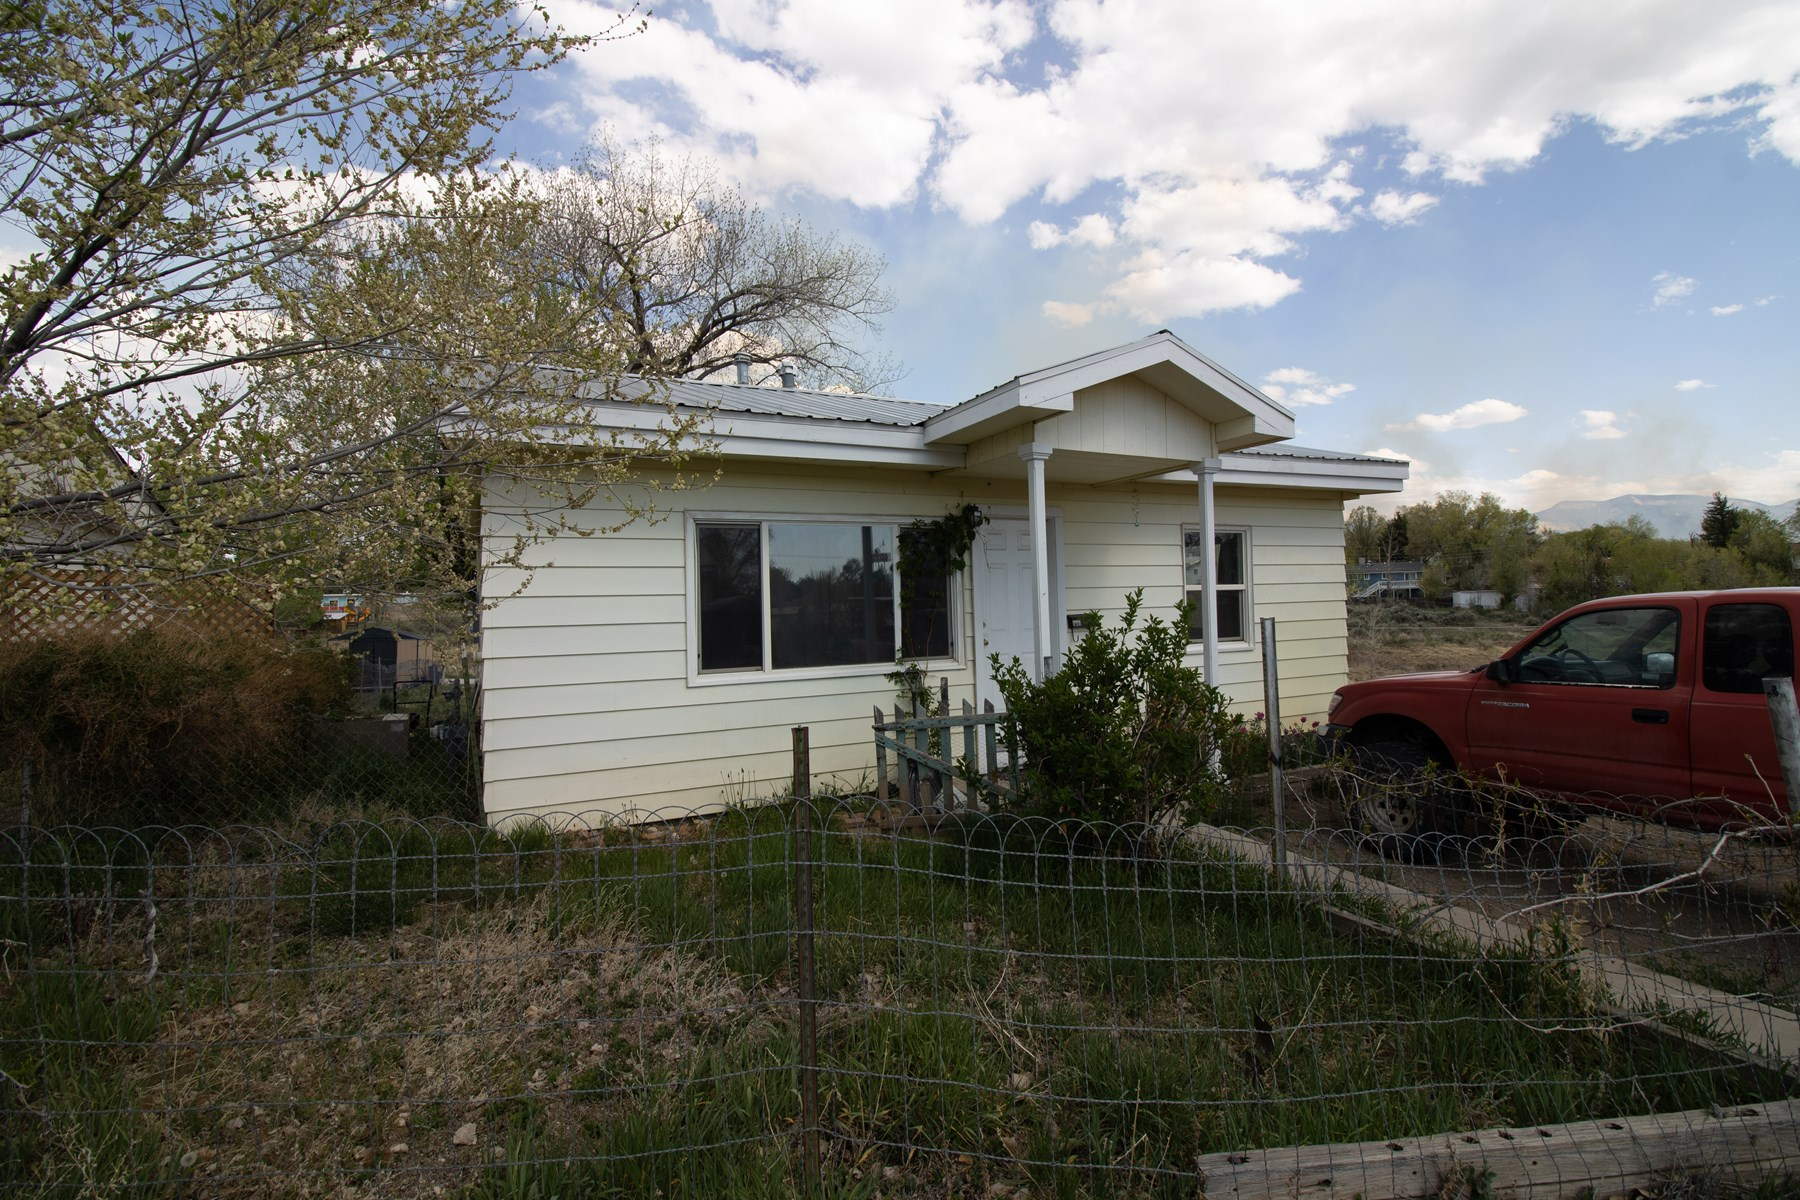 ADORABLE HOME FOR SALE IN CORTEZ, CO!